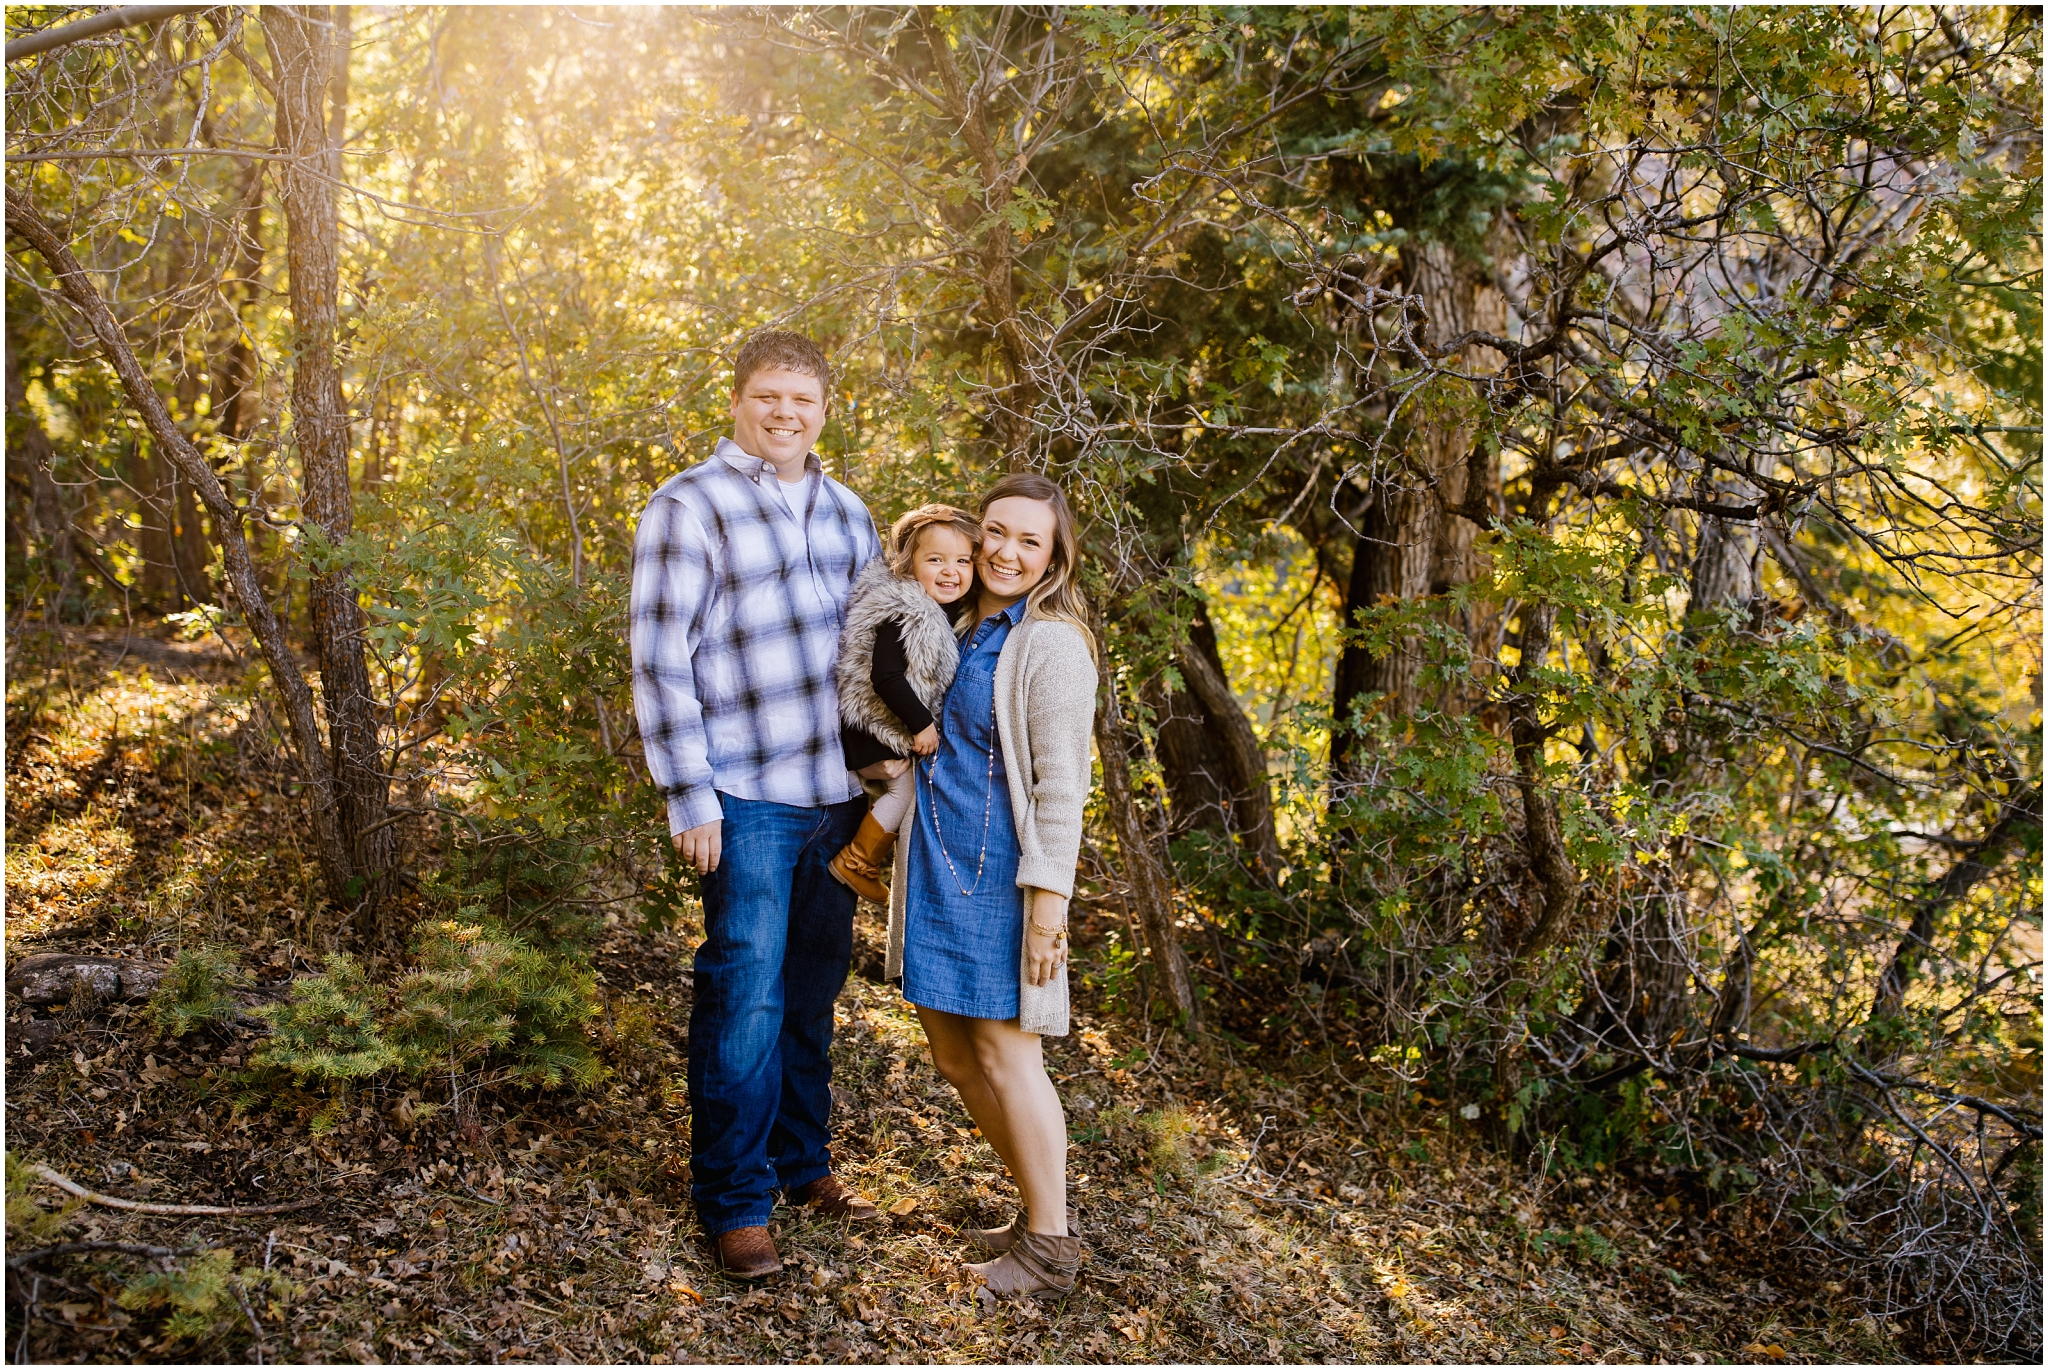 Frandsen-3_Lizzie-B-Imagery-Utah-Family-Photographer-Utah-County-Central-Utah-Park-City-Salt-Lake-City.jpg